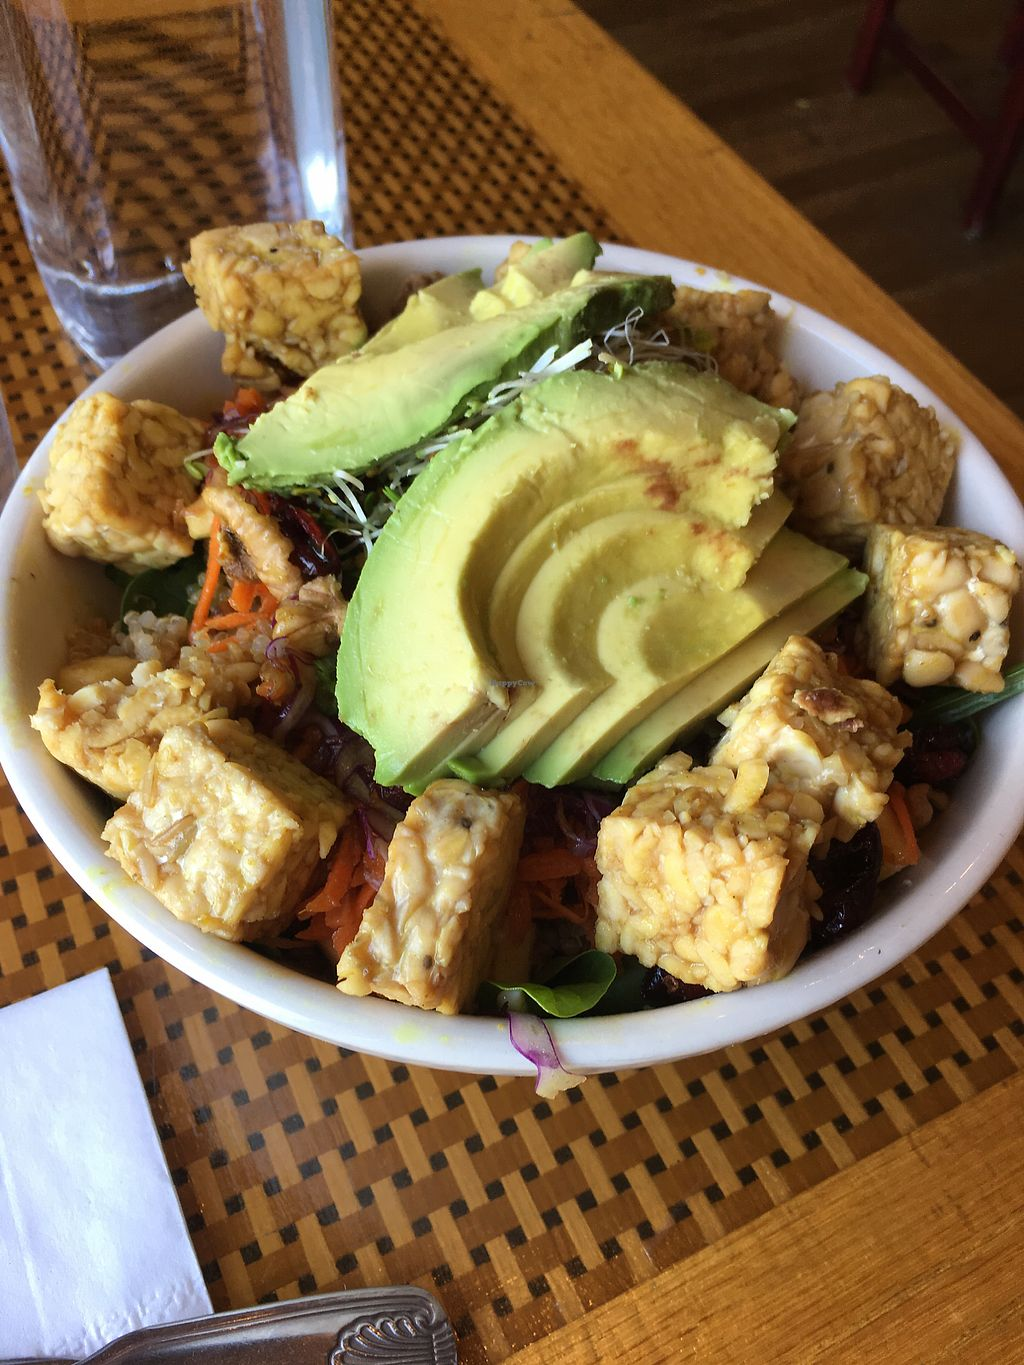 """Photo of Organic Garden Cafe  by <a href=""""/members/profile/kristy_oc"""">kristy_oc</a> <br/>Harvest bowl with tempeh and avocado added <br/> August 16, 2017  - <a href='/contact/abuse/image/2090/293387'>Report</a>"""